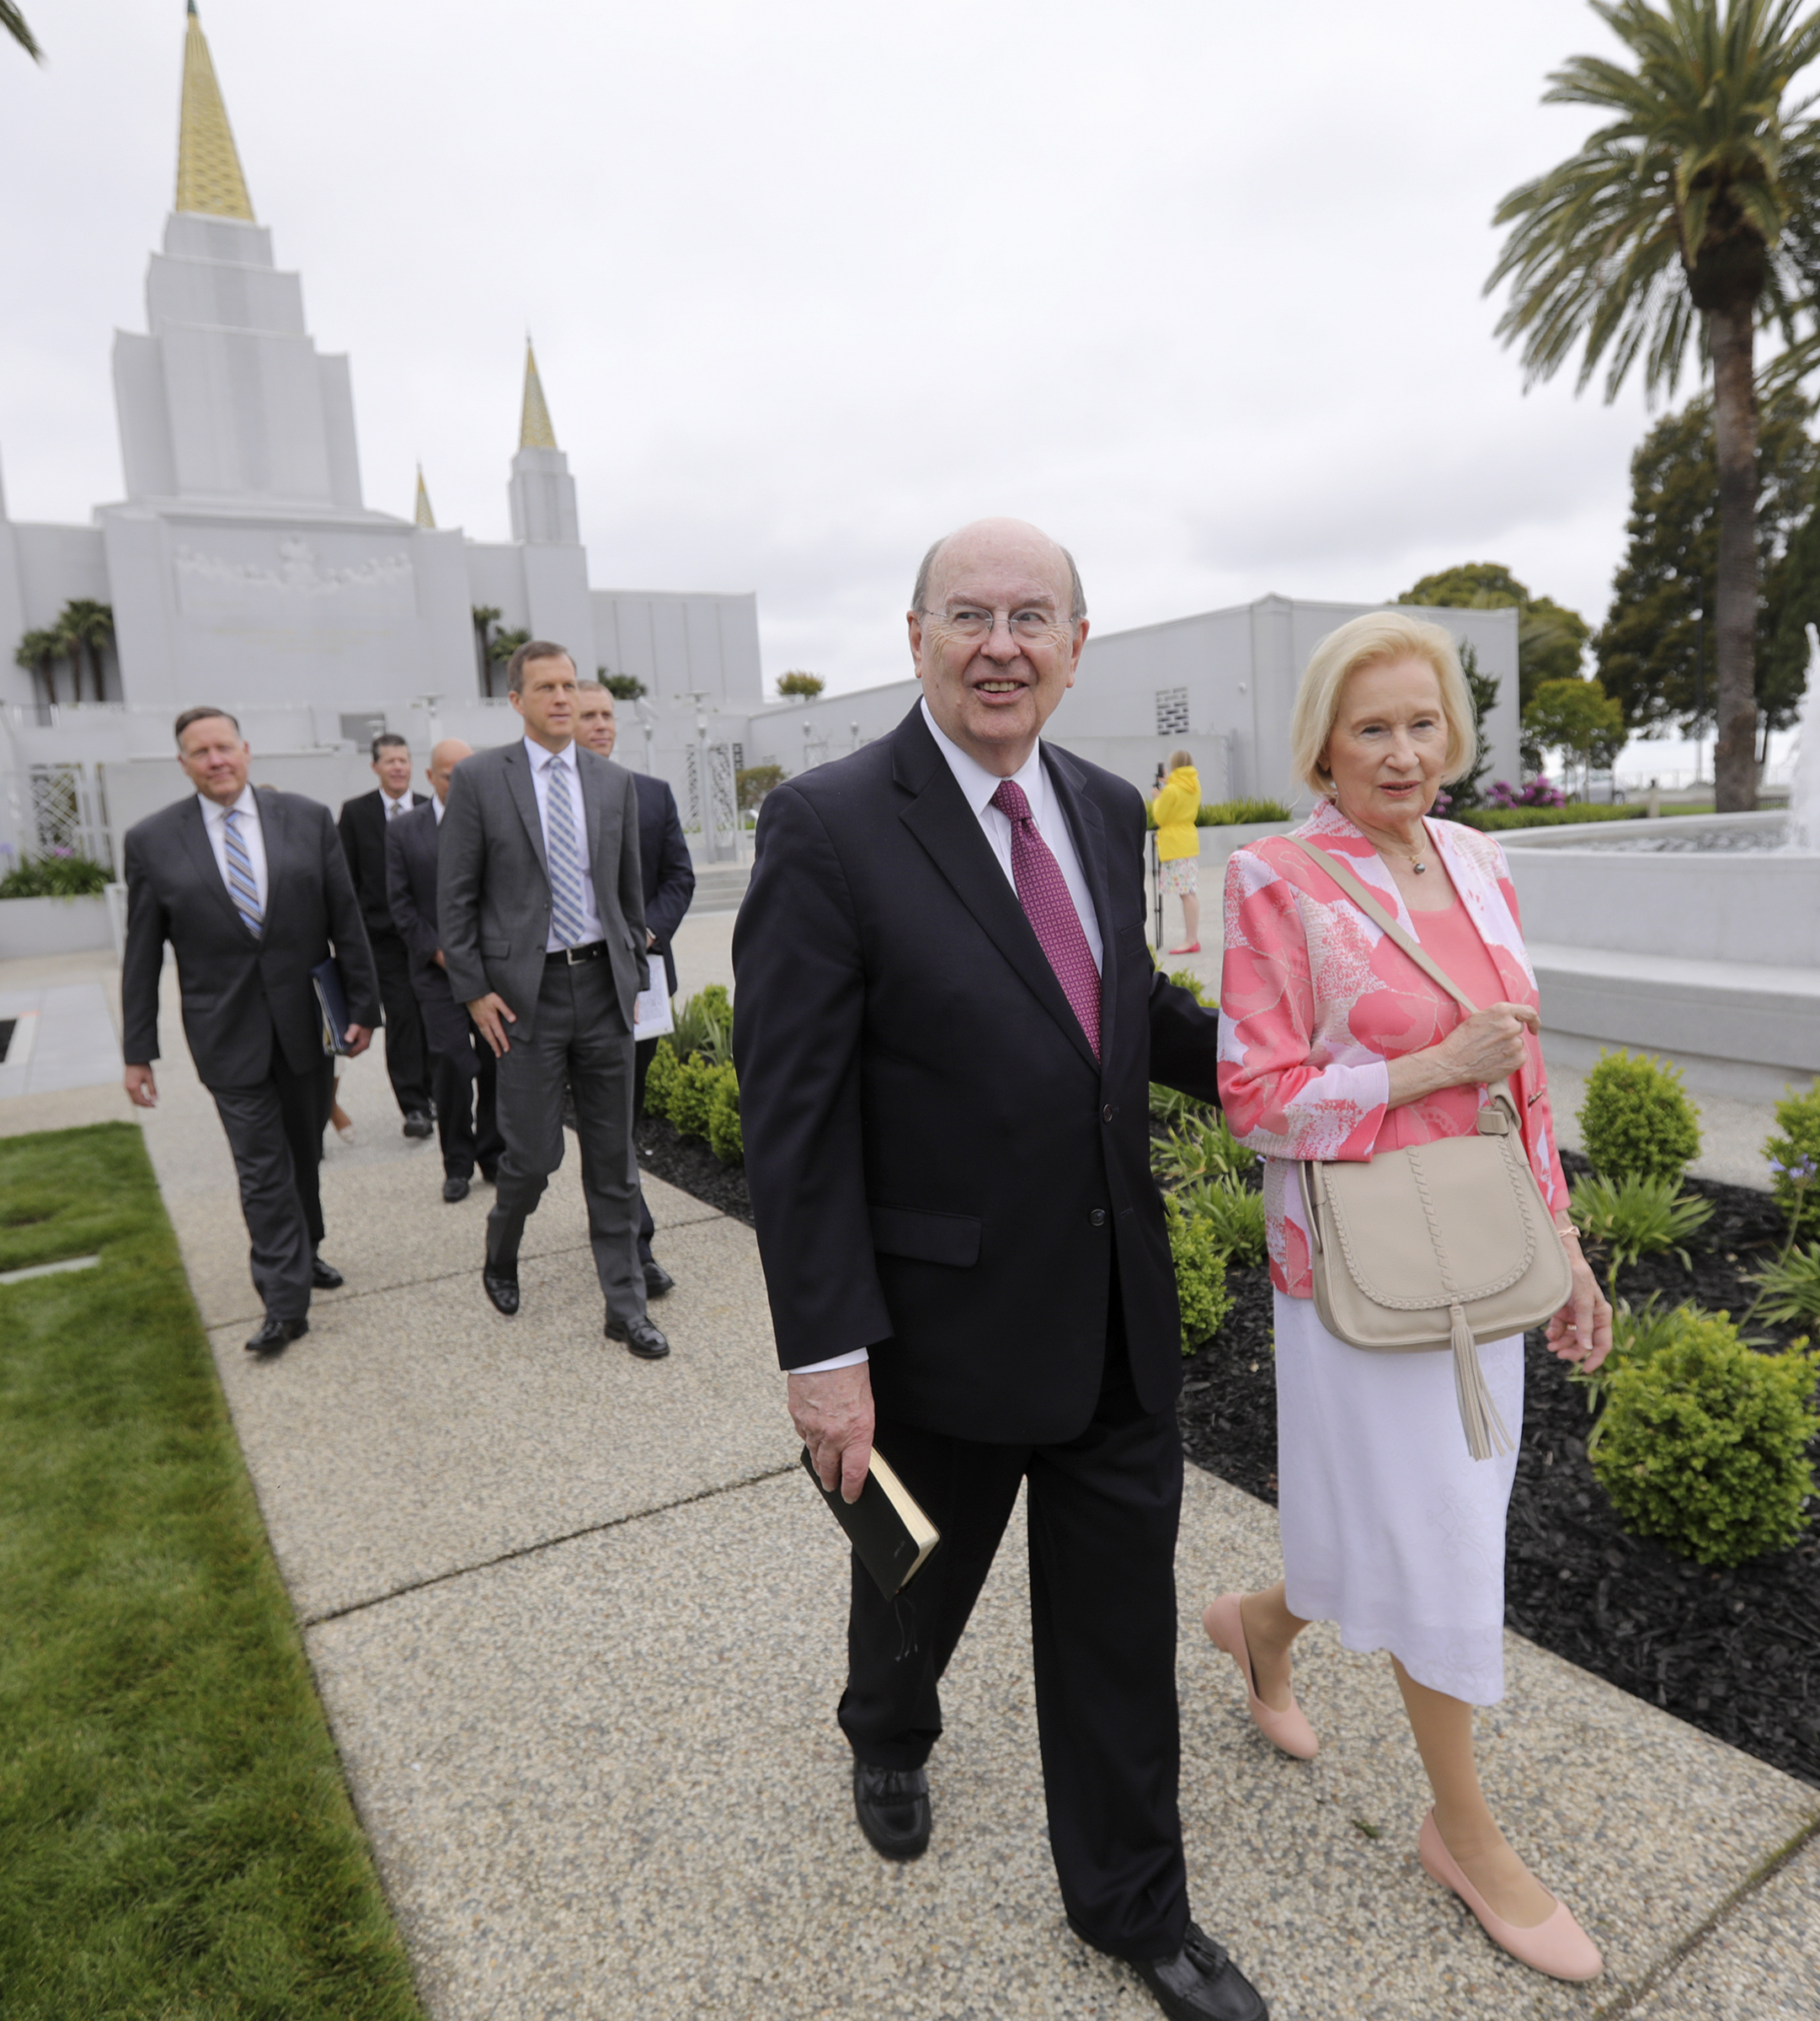 Elder Quentin L. Cook of the Quorum of the Twelve Apostles, and his wife, Sister Mary G. Cook, walk the temple grounds after finishing a tour of the newly renovated Oakland California Temple of The Church of Jesus Christ of Latter-day Saints, in Oakland, Calif., on Monday, May 6, 2019.